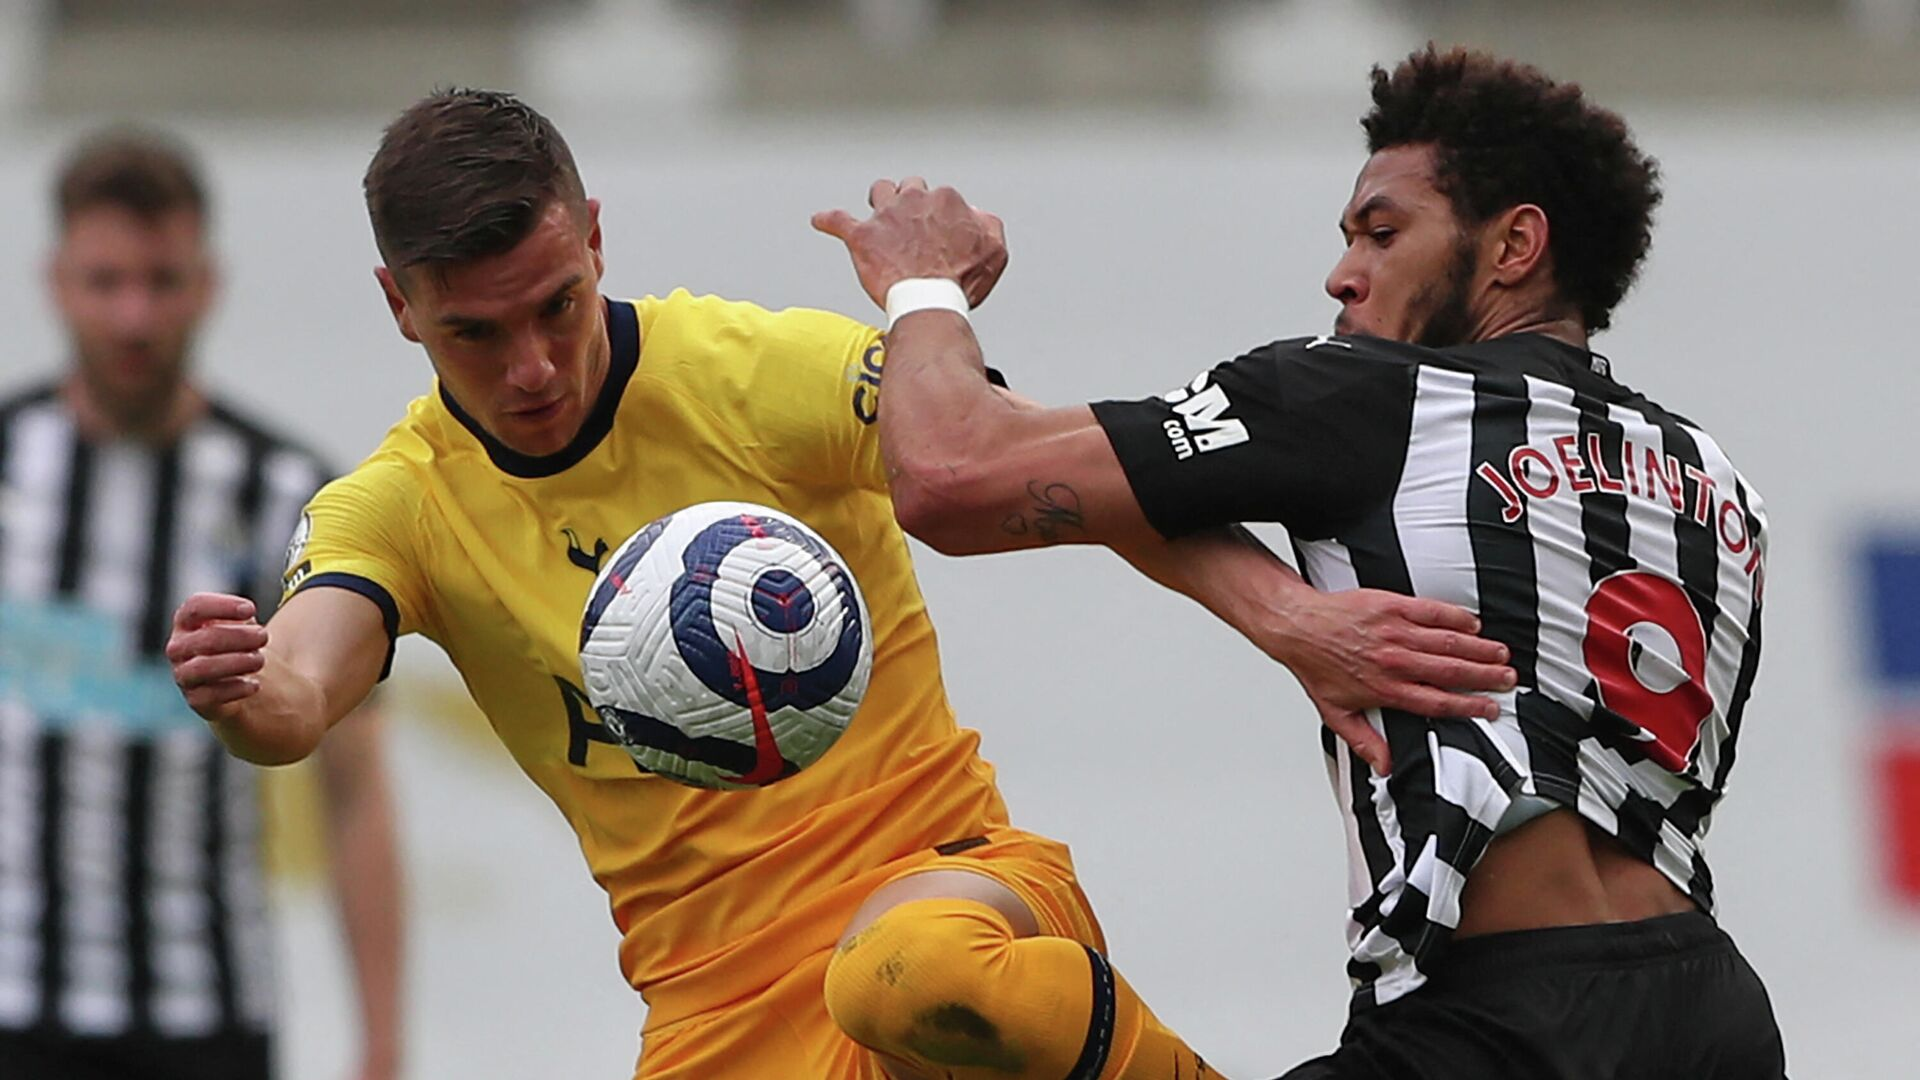 Tottenham Hotspur's Argentinian midfielder Giovani Lo Celso (L) vies with Newcastle United's Brazilian striker Joelinton (R) during the English Premier League football match between Newcastle United and Tottenham Hotspur at St James' Park in Newcastle-upon-Tyne, north east England on April 4, 2021. (Photo by SCOTT HEPPELL / POOL / AFP) / RESTRICTED TO EDITORIAL USE. No use with unauthorized audio, video, data, fixture lists, club/league logos or 'live' services. Online in-match use limited to 120 images. An additional 40 images may be used in extra time. No video emulation. Social media in-match use limited to 120 images. An additional 40 images may be used in extra time. No use in betting publications, games or single club/league/player publications. /  - РИА Новости, 1920, 04.04.2021